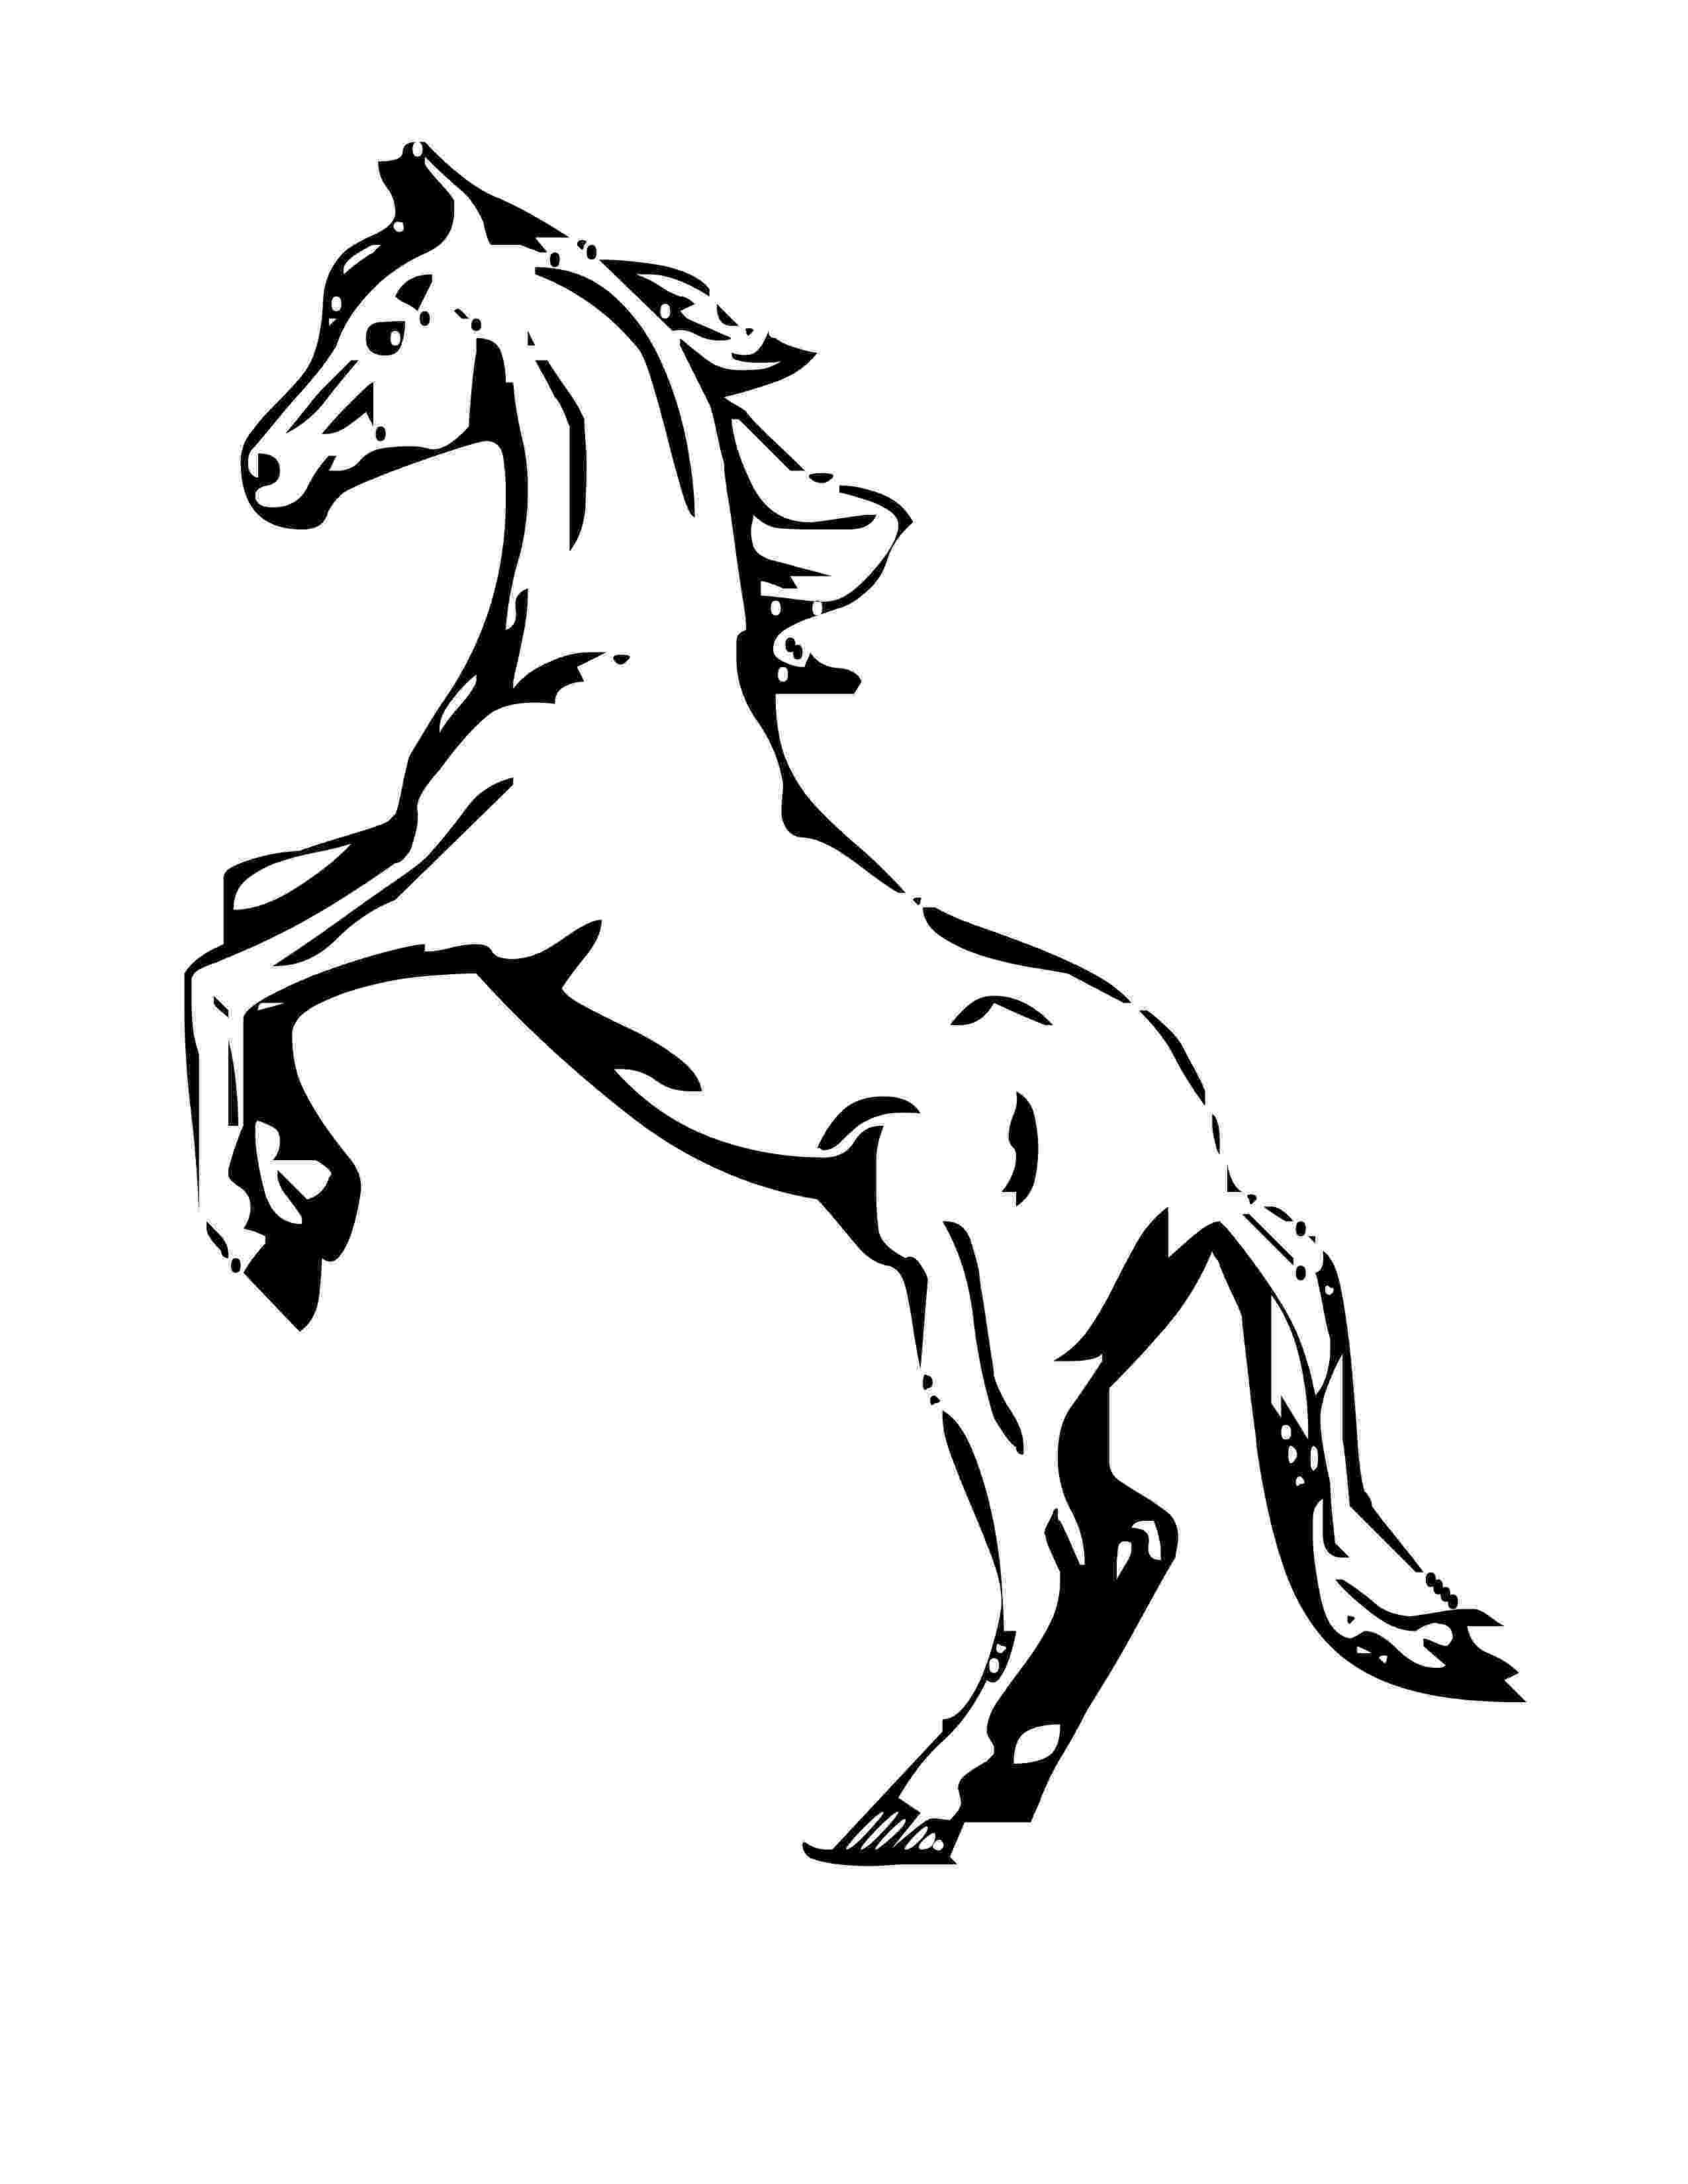 free coloring pictures of horses 30 best horse coloring pages ideas we need fun of coloring horses free pictures